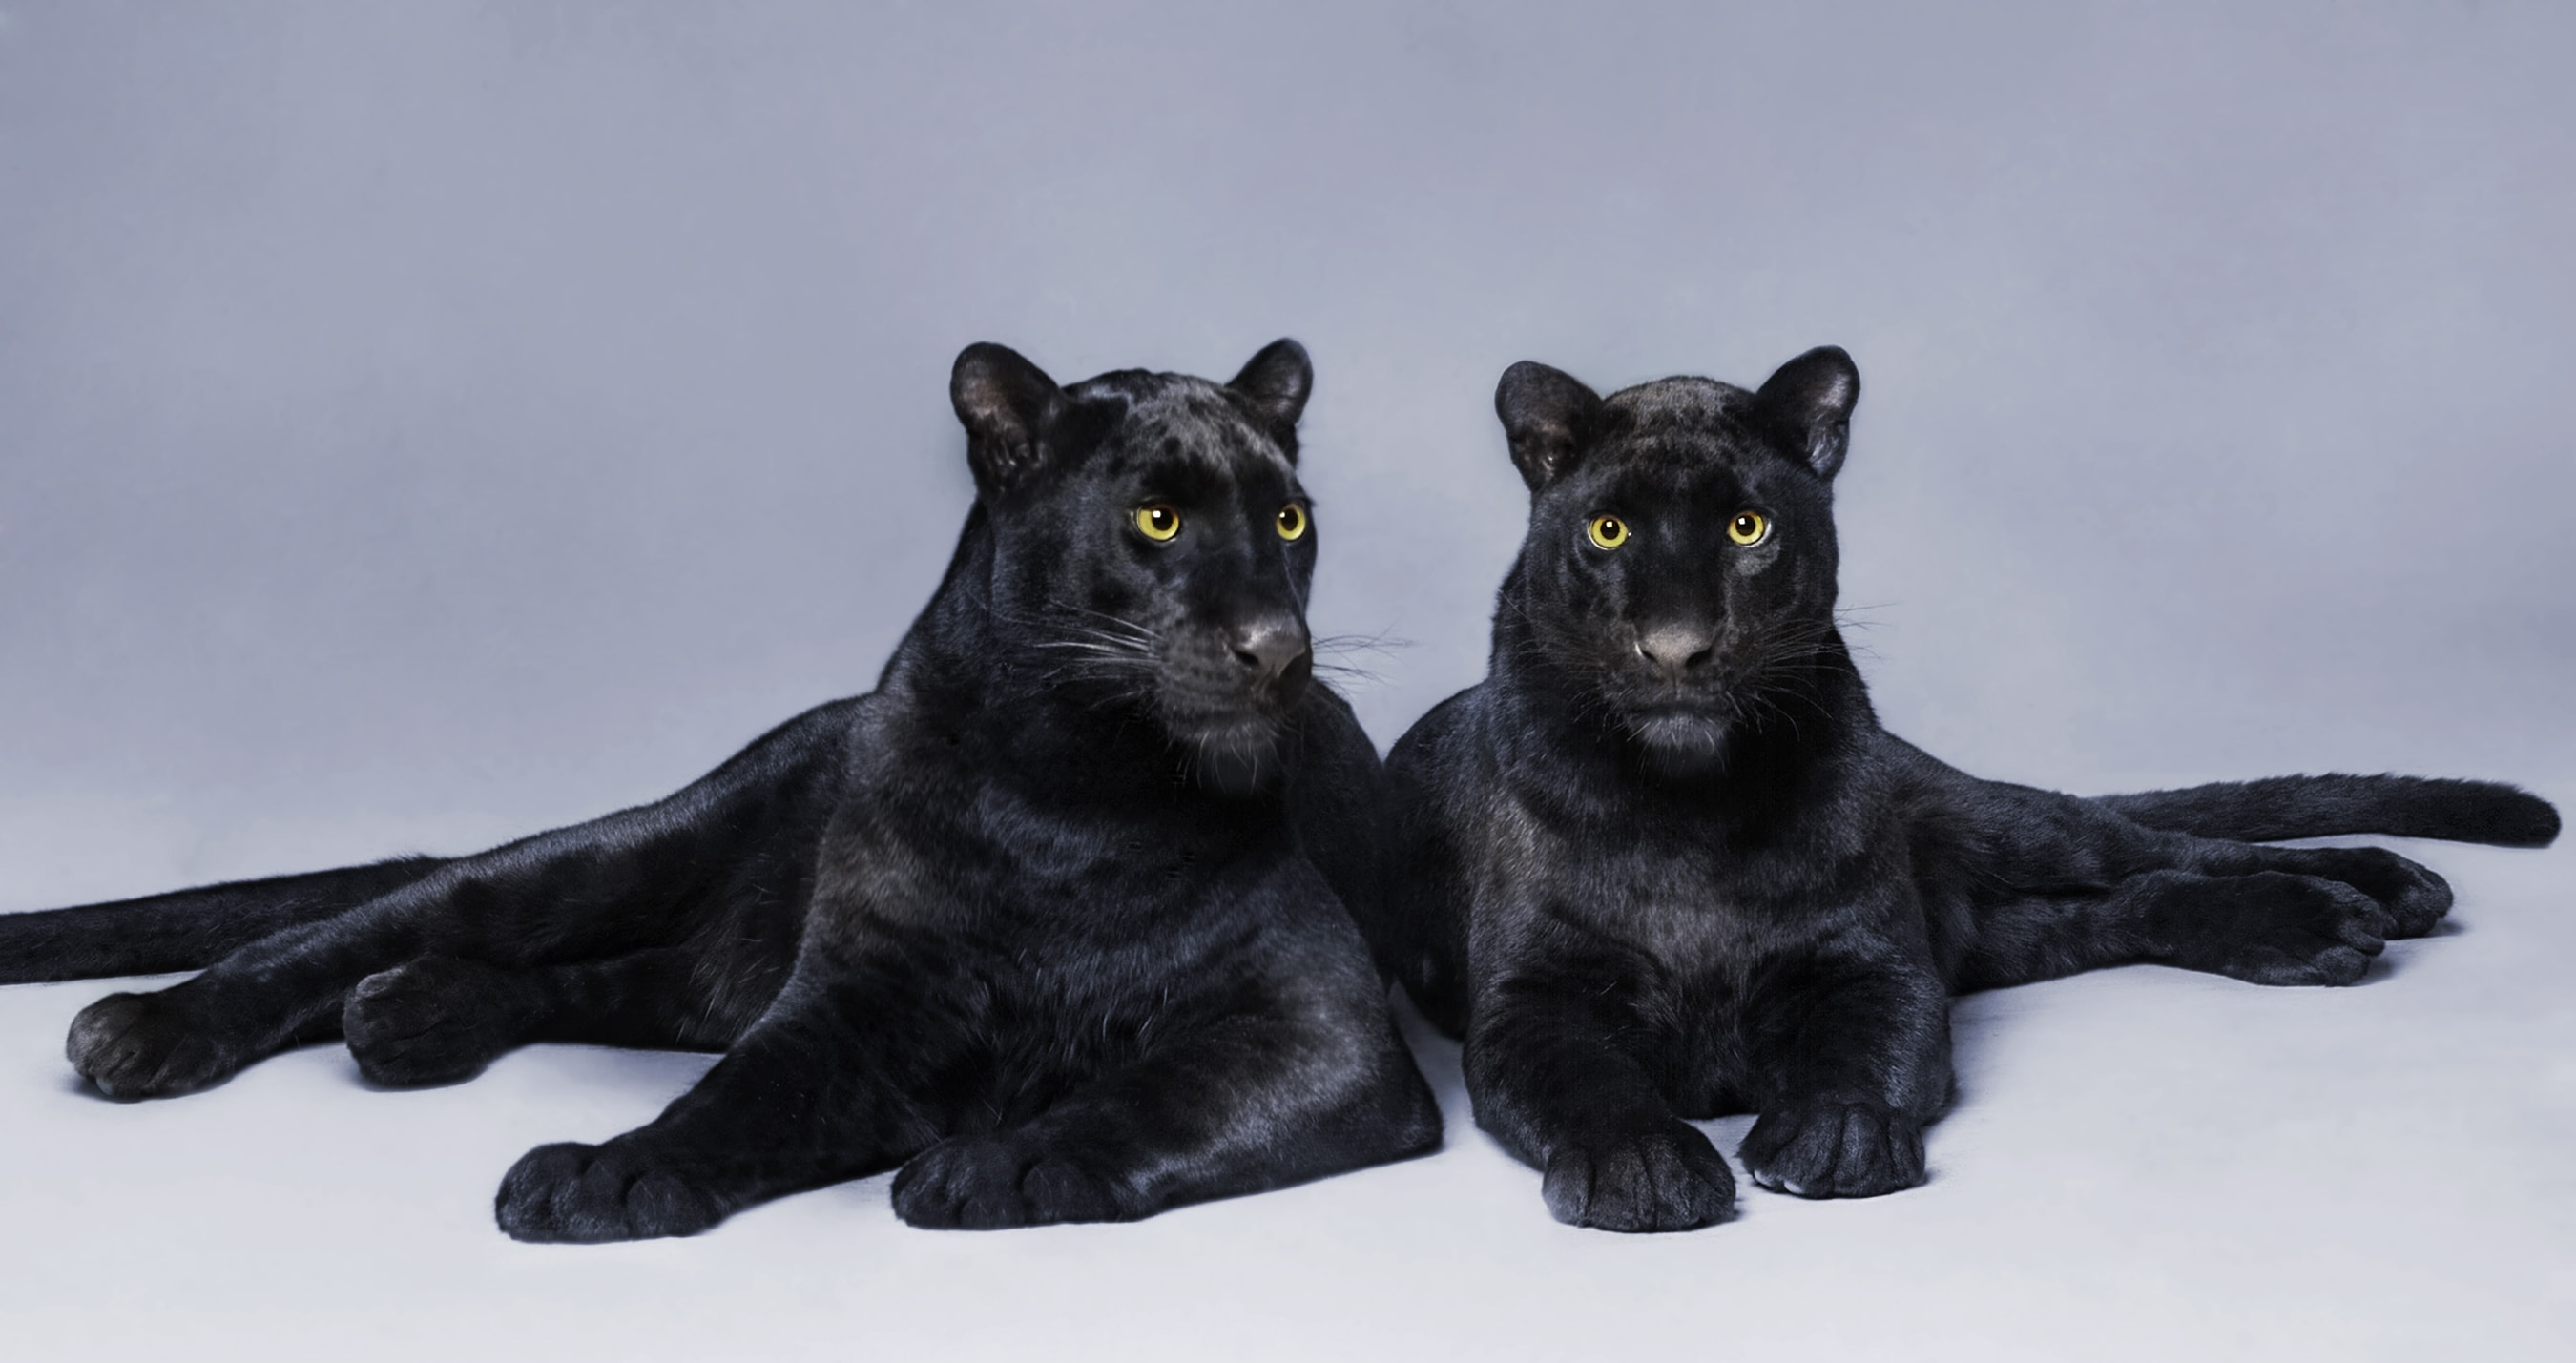 Two black panthers by Paul Bussell